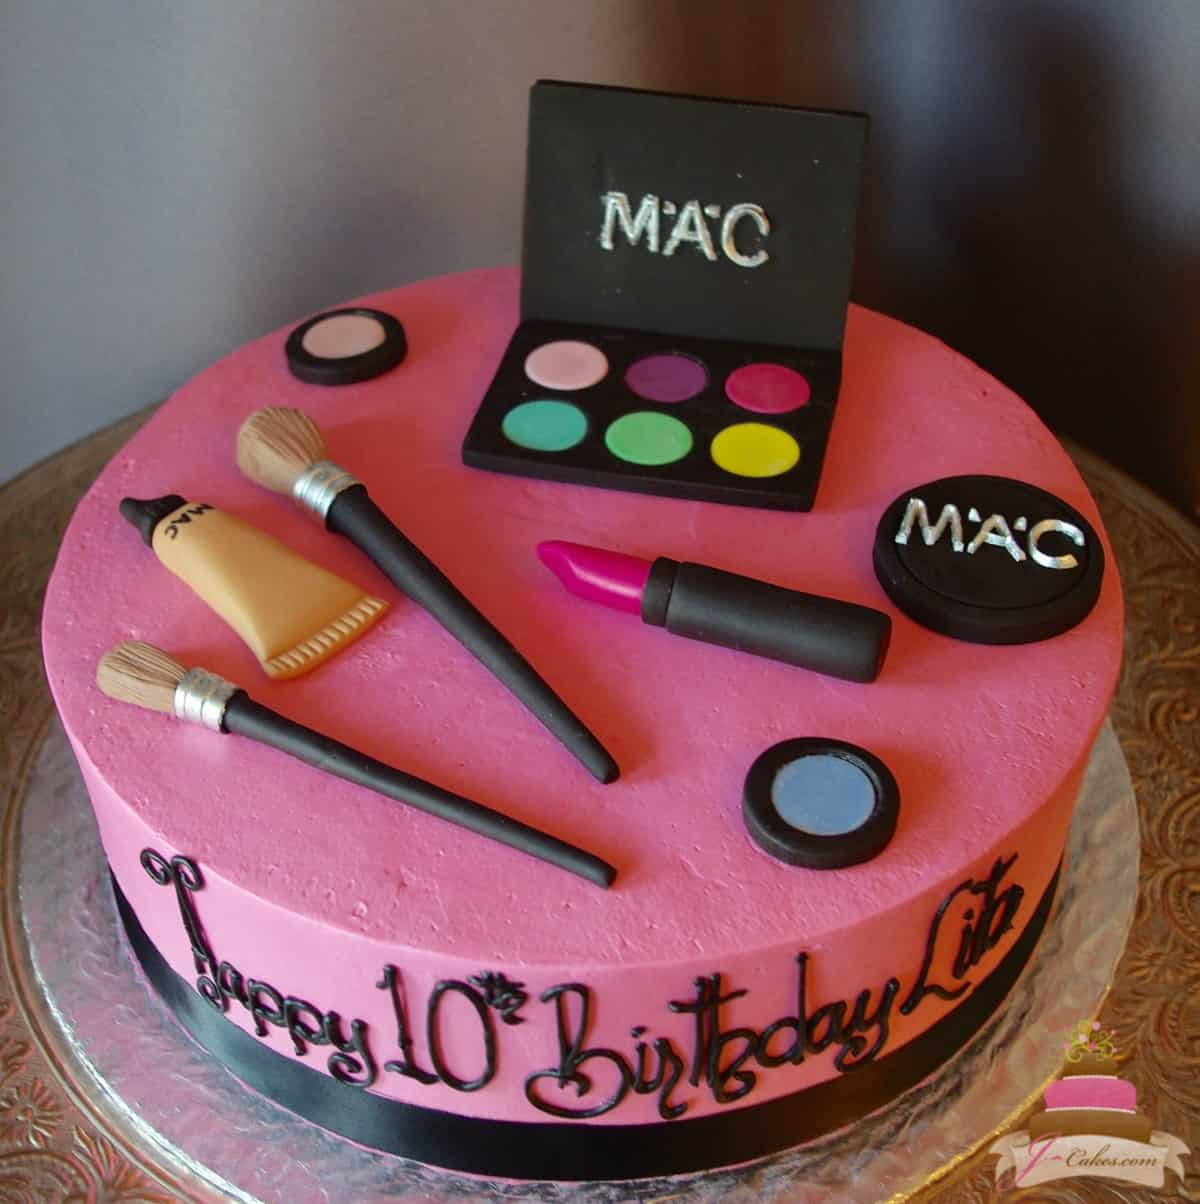 (522) MAC Make-Up Theme Cake